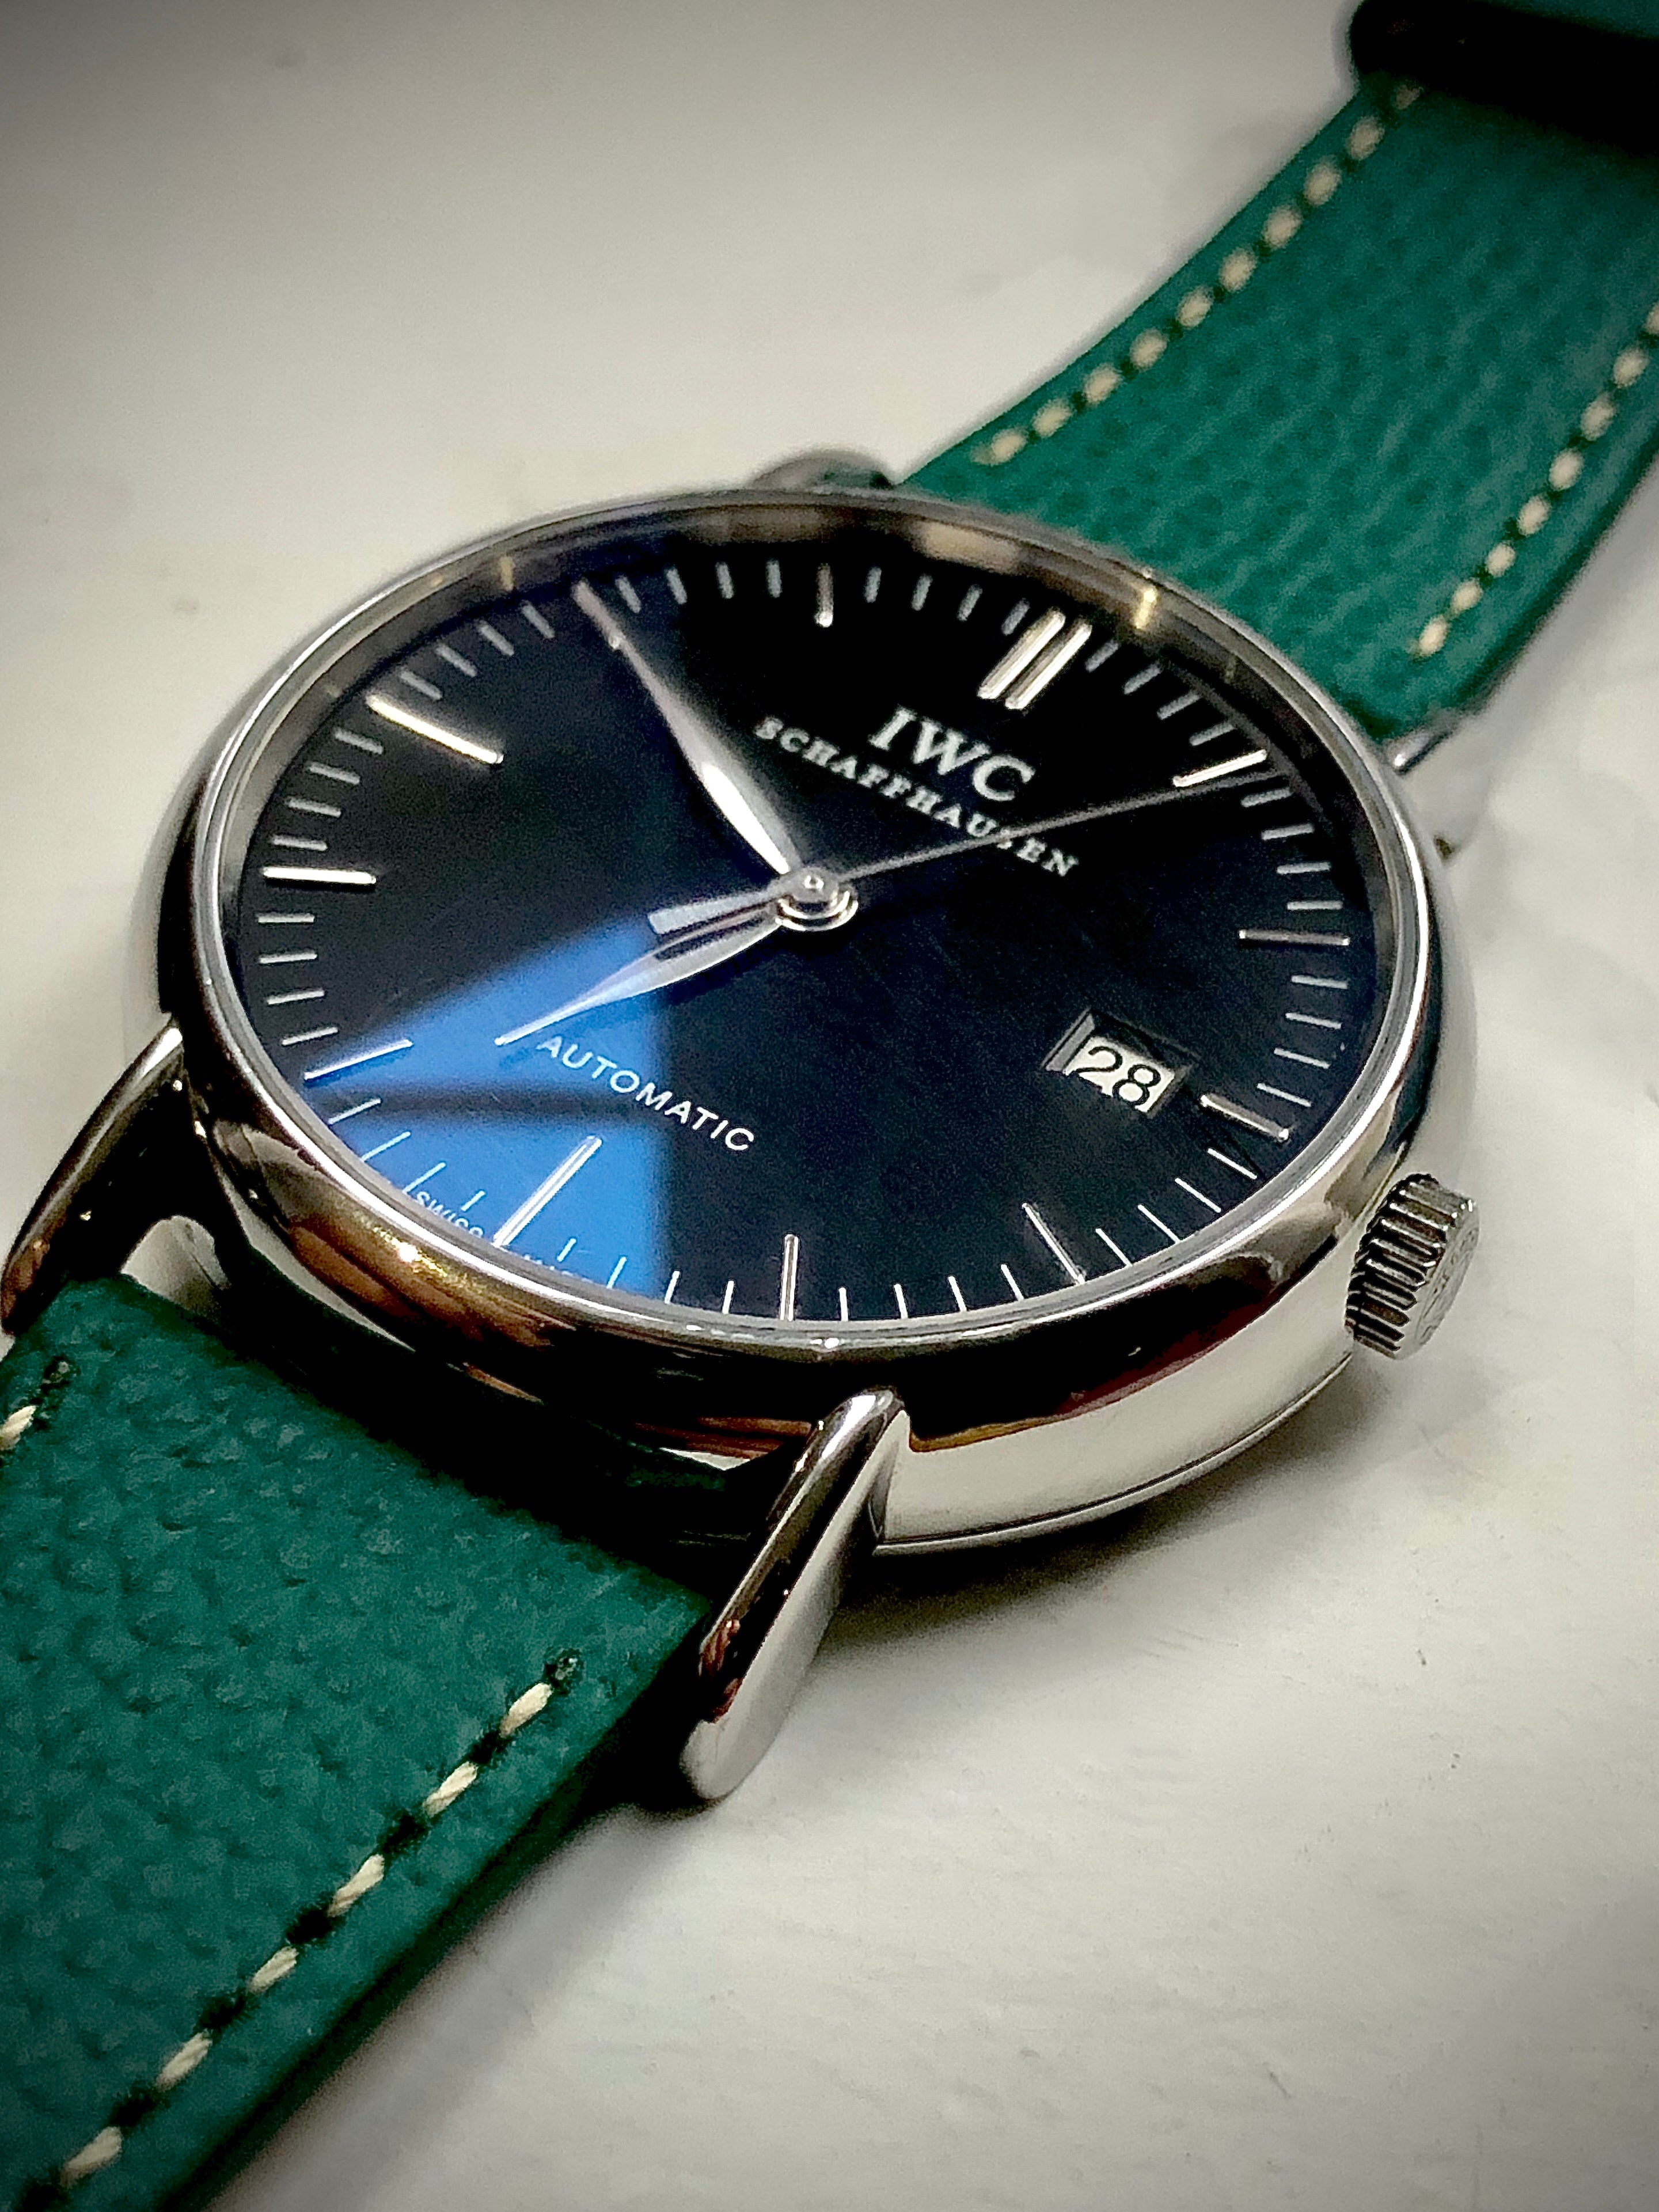 iwc watch with vario leather watch band